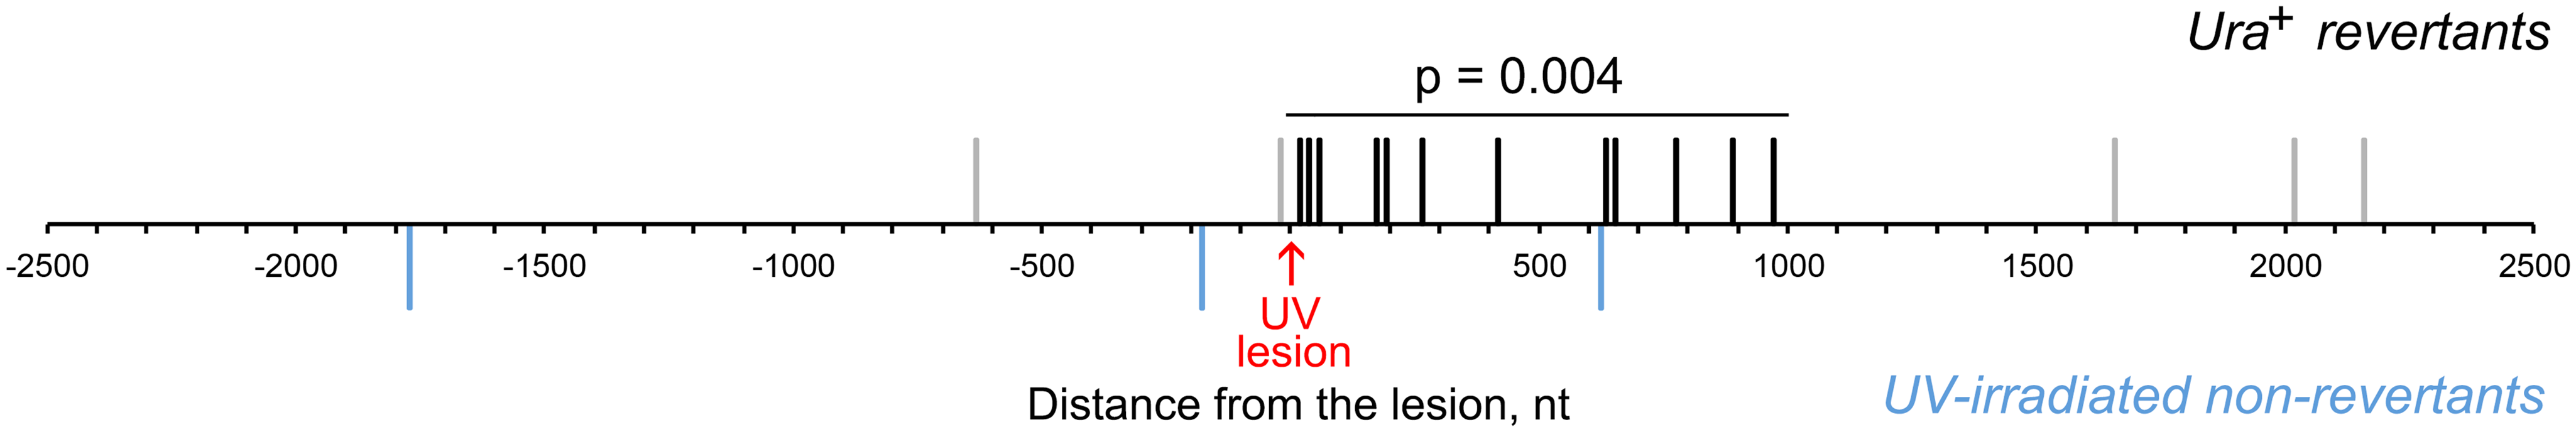 UV lesion bypass is associated with increased mutagenesis downstream of the lesion.